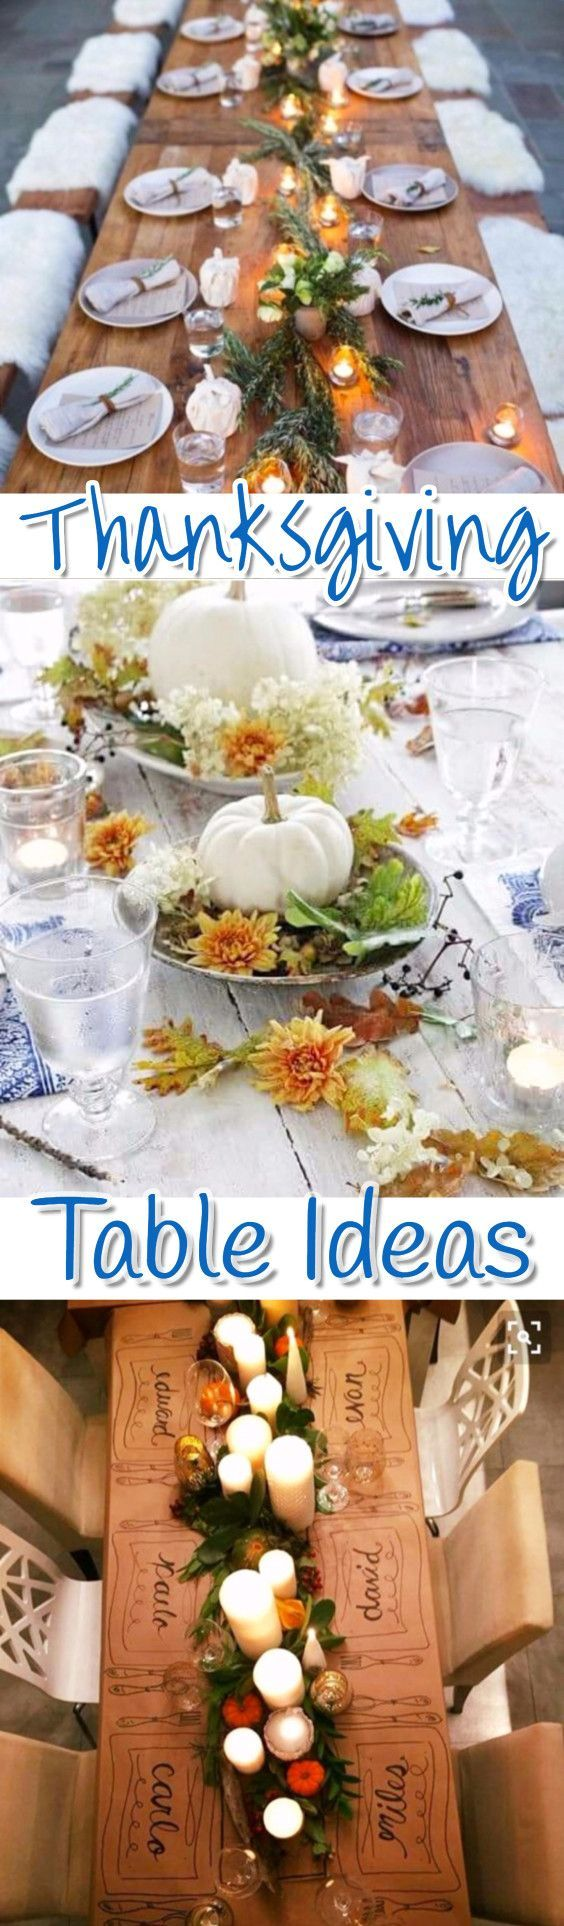 Thanksgiving Table Settings • DIY ideas for your Thanksgiving table • Thanksgiving Table Decor • Thanksgiving Centerpieces • Thanksgiving Dinner Table • Thanksgiving Tablescapes • Fall table & Fall Table Settings Pictures and ideas for small intimate romantic Thanksgiving table or a Thanksgiving table for a crowd.